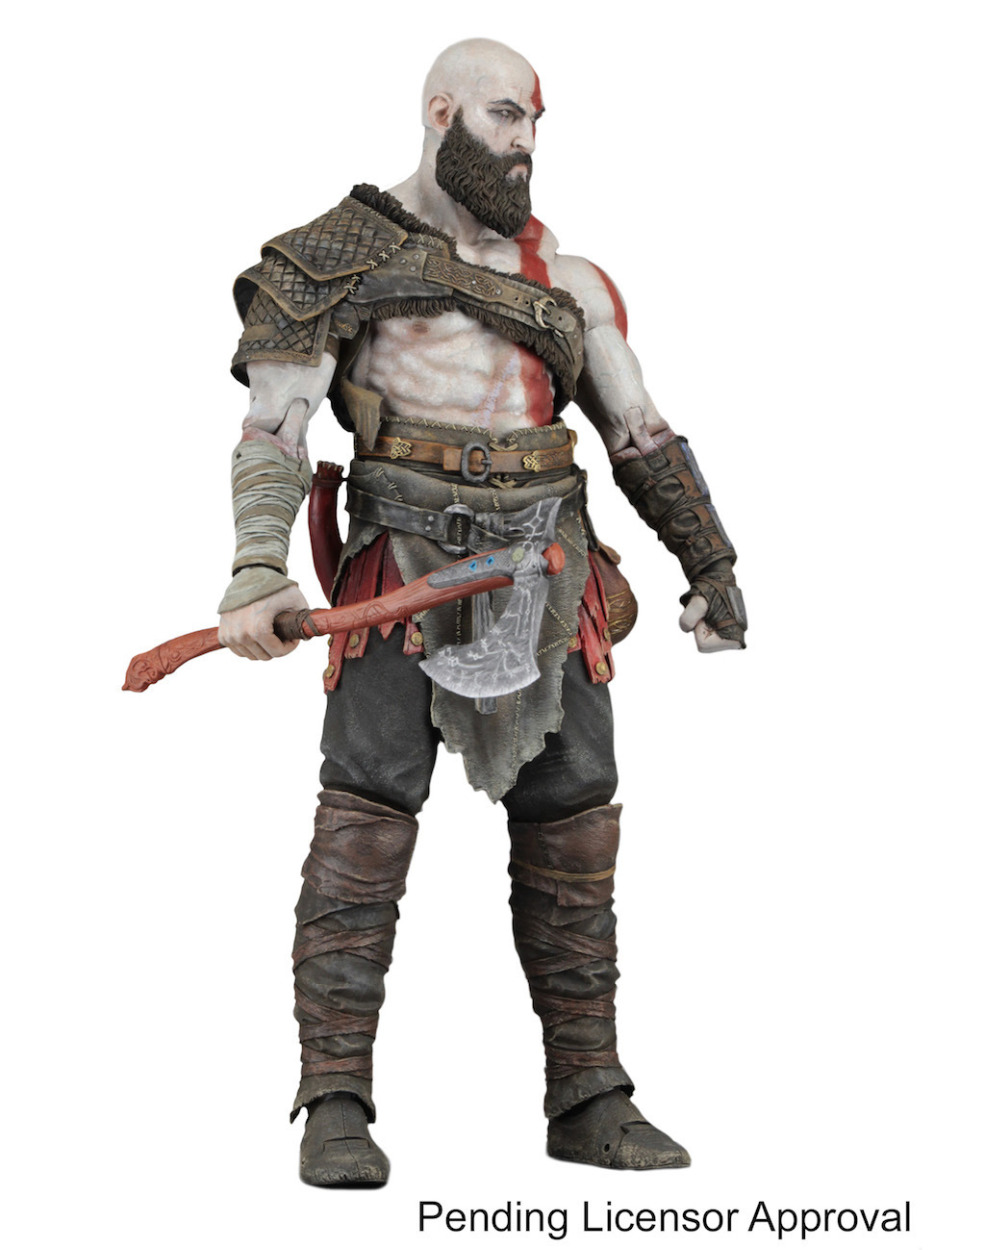 NECA Game God Of War Kratos With Axe PVC Action Figure 7 inch Collectables Model Toy god of war 2 pvc action figure display toy doll kratos with medusa head